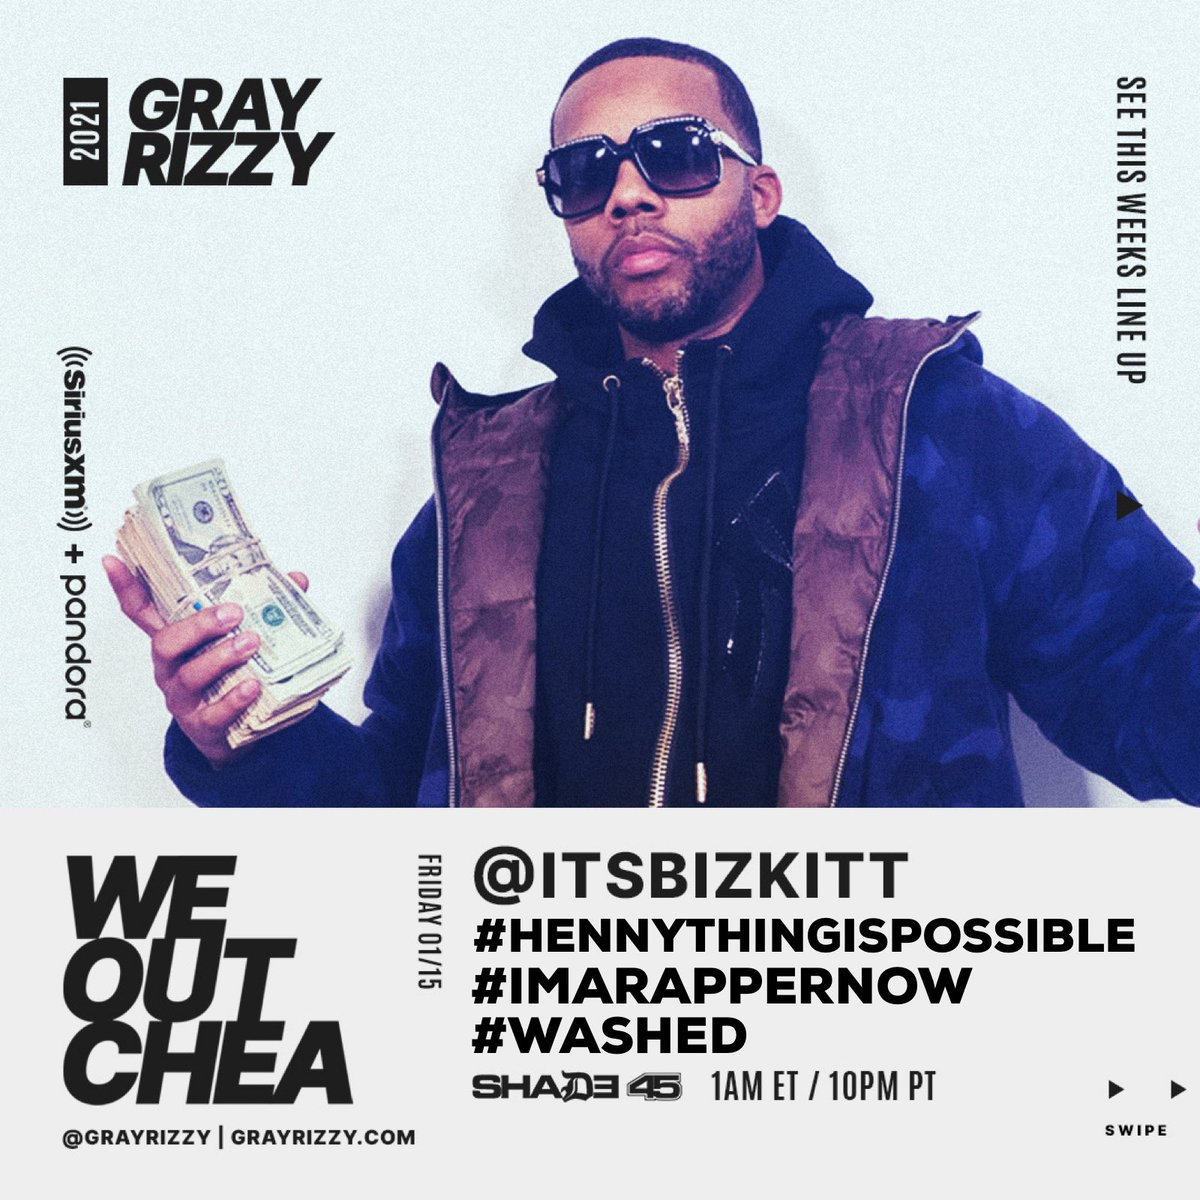 TONITE! The 🌍's Biggest Blogger aka @itsbizkit_ is stopping by the studio with @grayrizzy on The #WeOutchea Show! Starts up at 12a on the East / 9p on the West! Tap in! 💯 #hennythingispossible